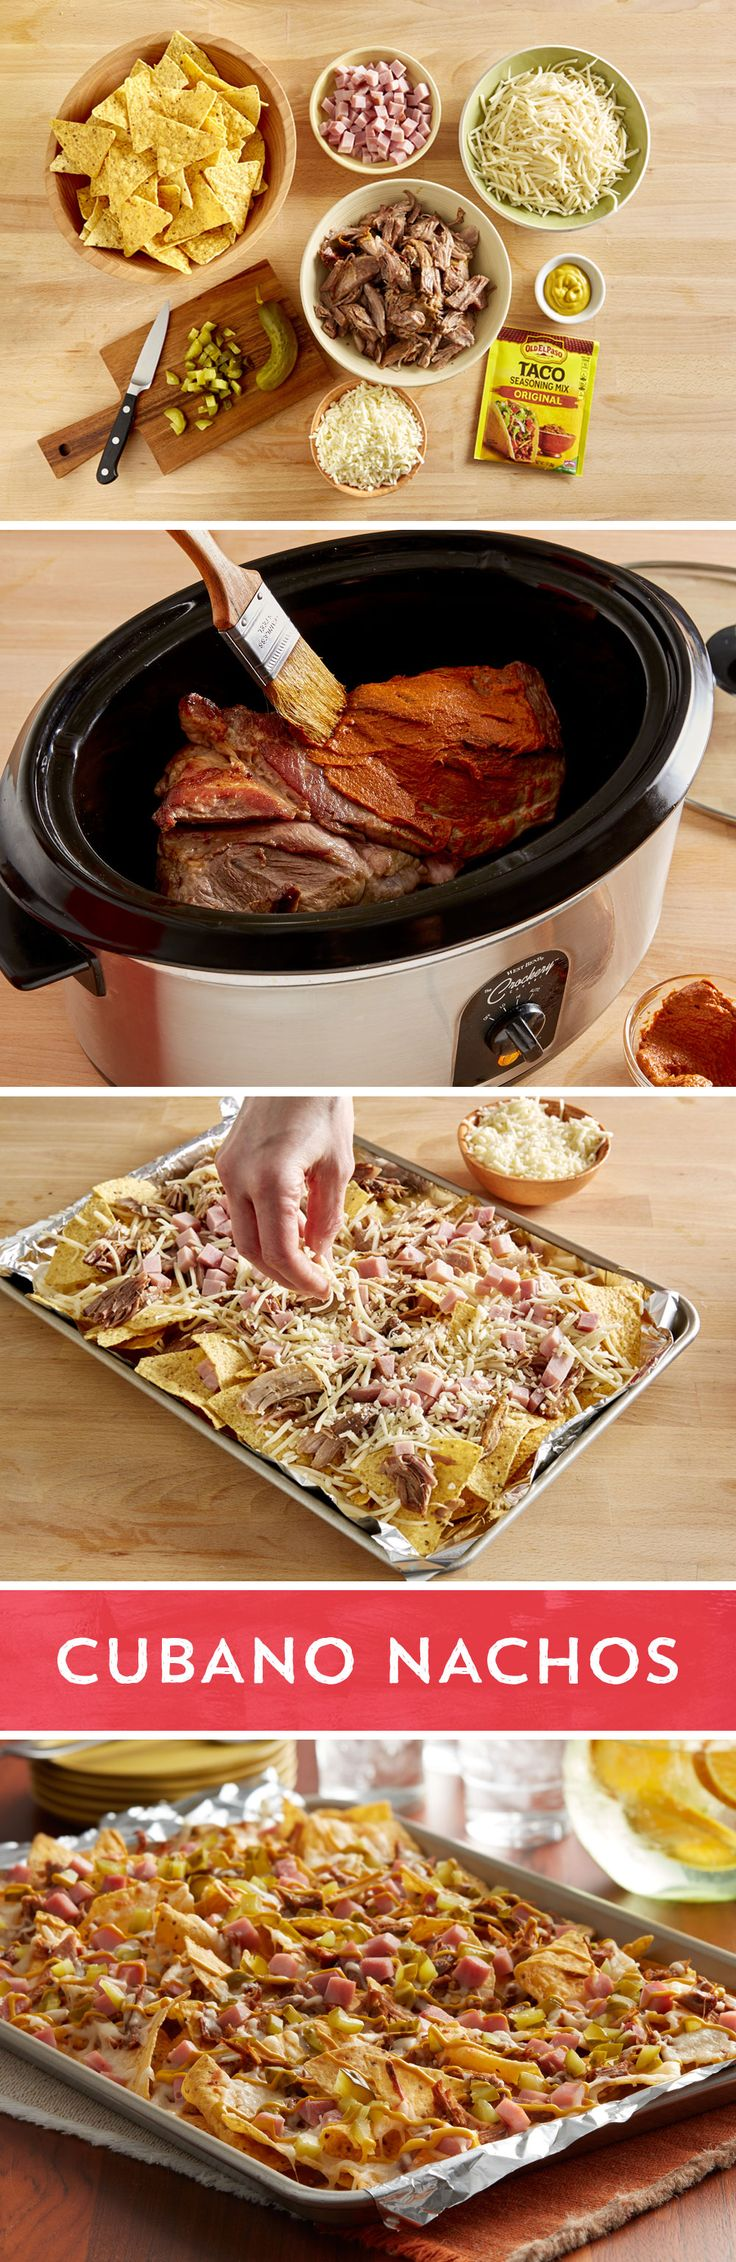 Nachos meet the classic Cuban sandwich in this easy sheet pan dish perfect for crowds. First, slow roasted pork shoulder coated in mustard and Old El Paso™ taco seasoning turns into juicy shredded pork. Ham, Swiss cheese, ham, Monterey Jack cheese join the shredded pork atop a baking sheet of chips before a quick trip in the oven. The final touches of dill pickles and yellow mustard complete the transformation from basic nacho to one with Cuban flair.